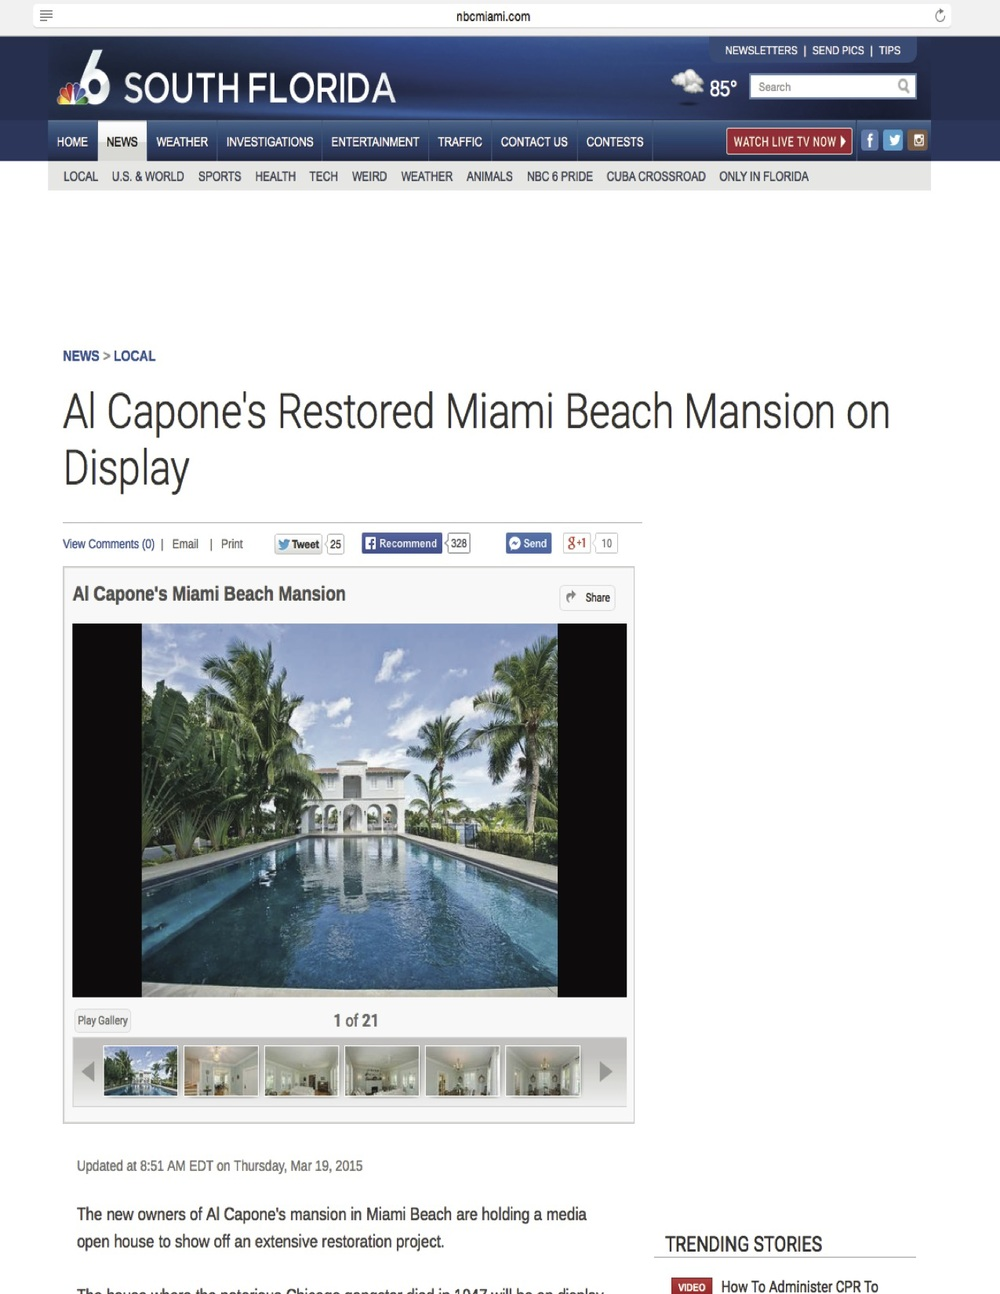 "<p><strong>NBC News</strong><a href=""http://www.nbcmiami.com/news/local/Al-Capones-Restored-Miami-Beach-Mansion-On-Display-296724561.html#244633411"" target=""_blank"">Watch Video →</a></p>"